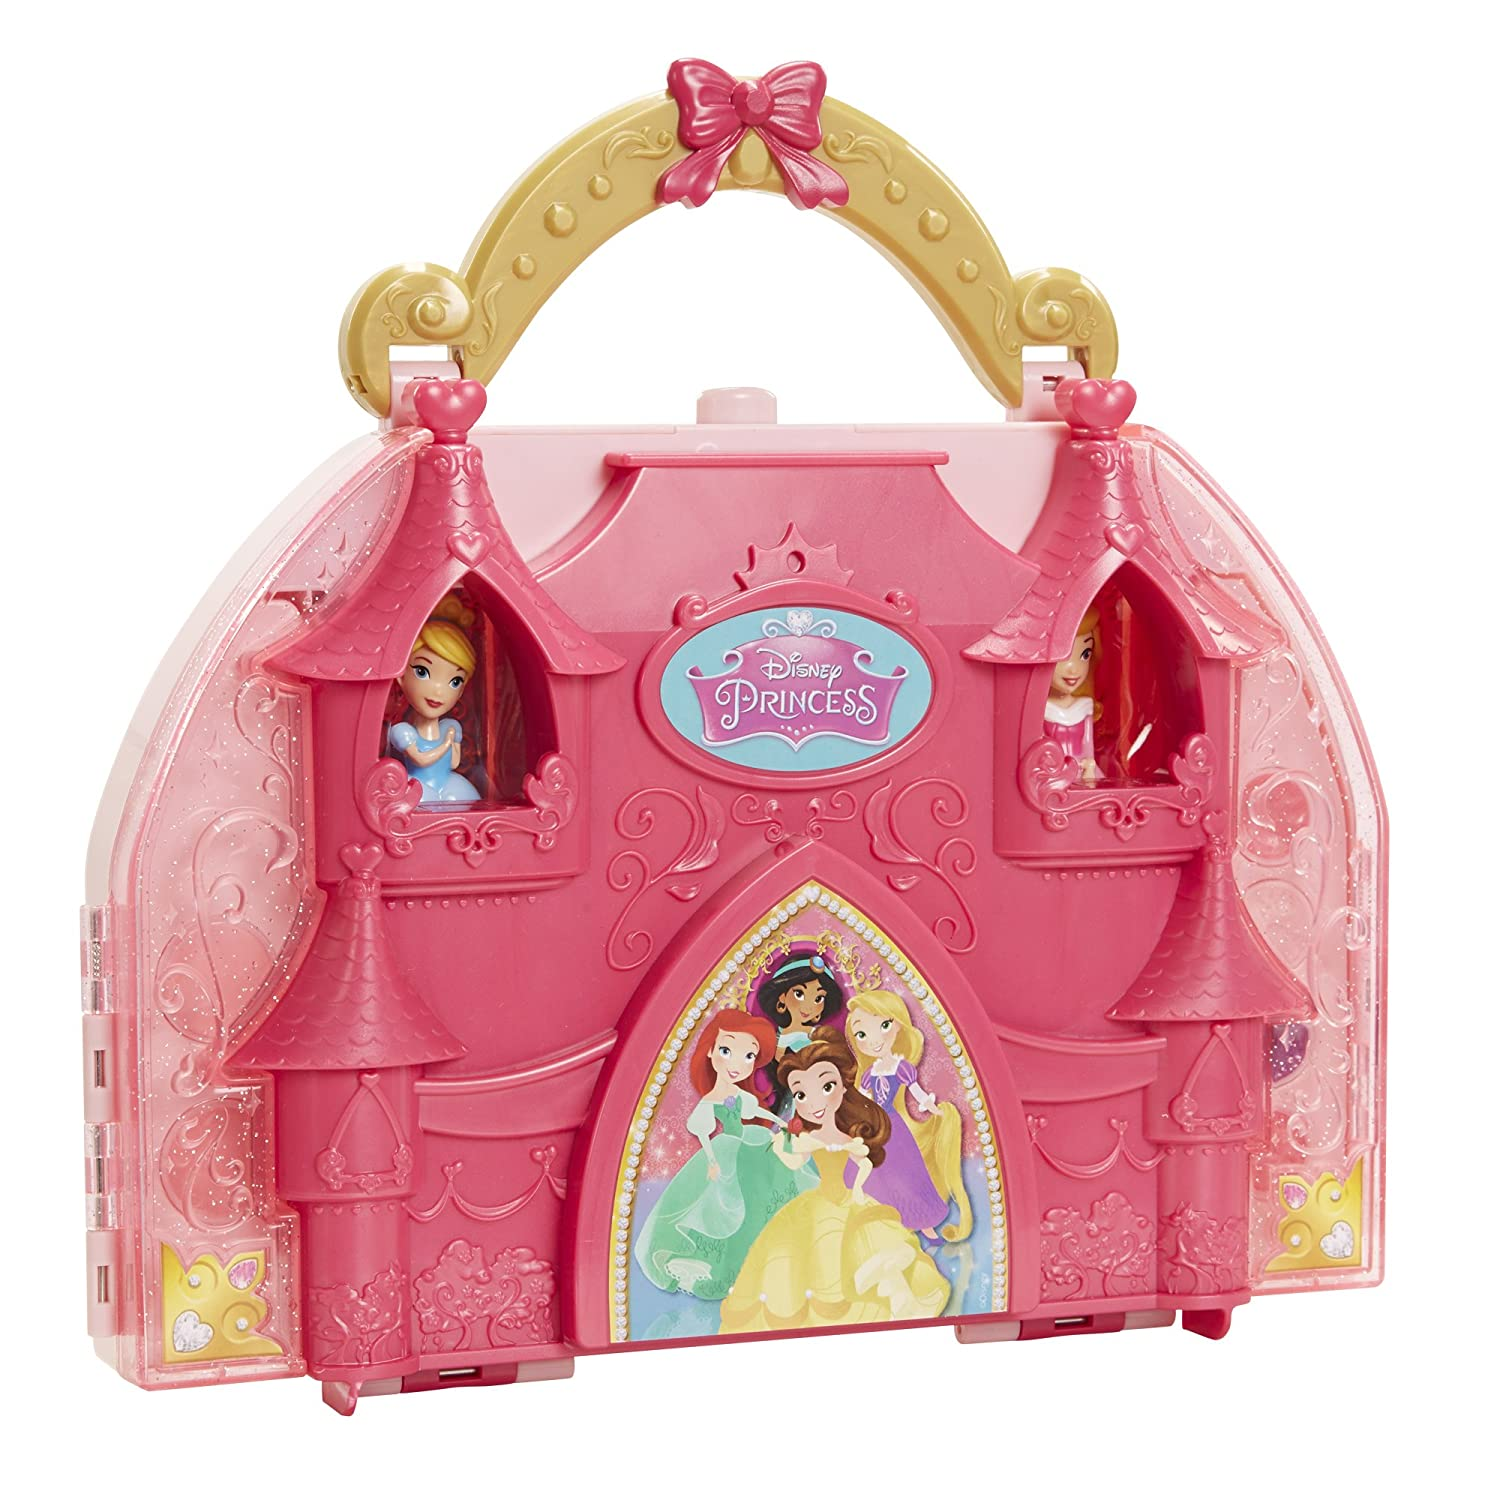 Disney princess coloring vanity case - Amazon Com Disney Princess Little Kingdom Cosmetic Castle Vanity Toys Games